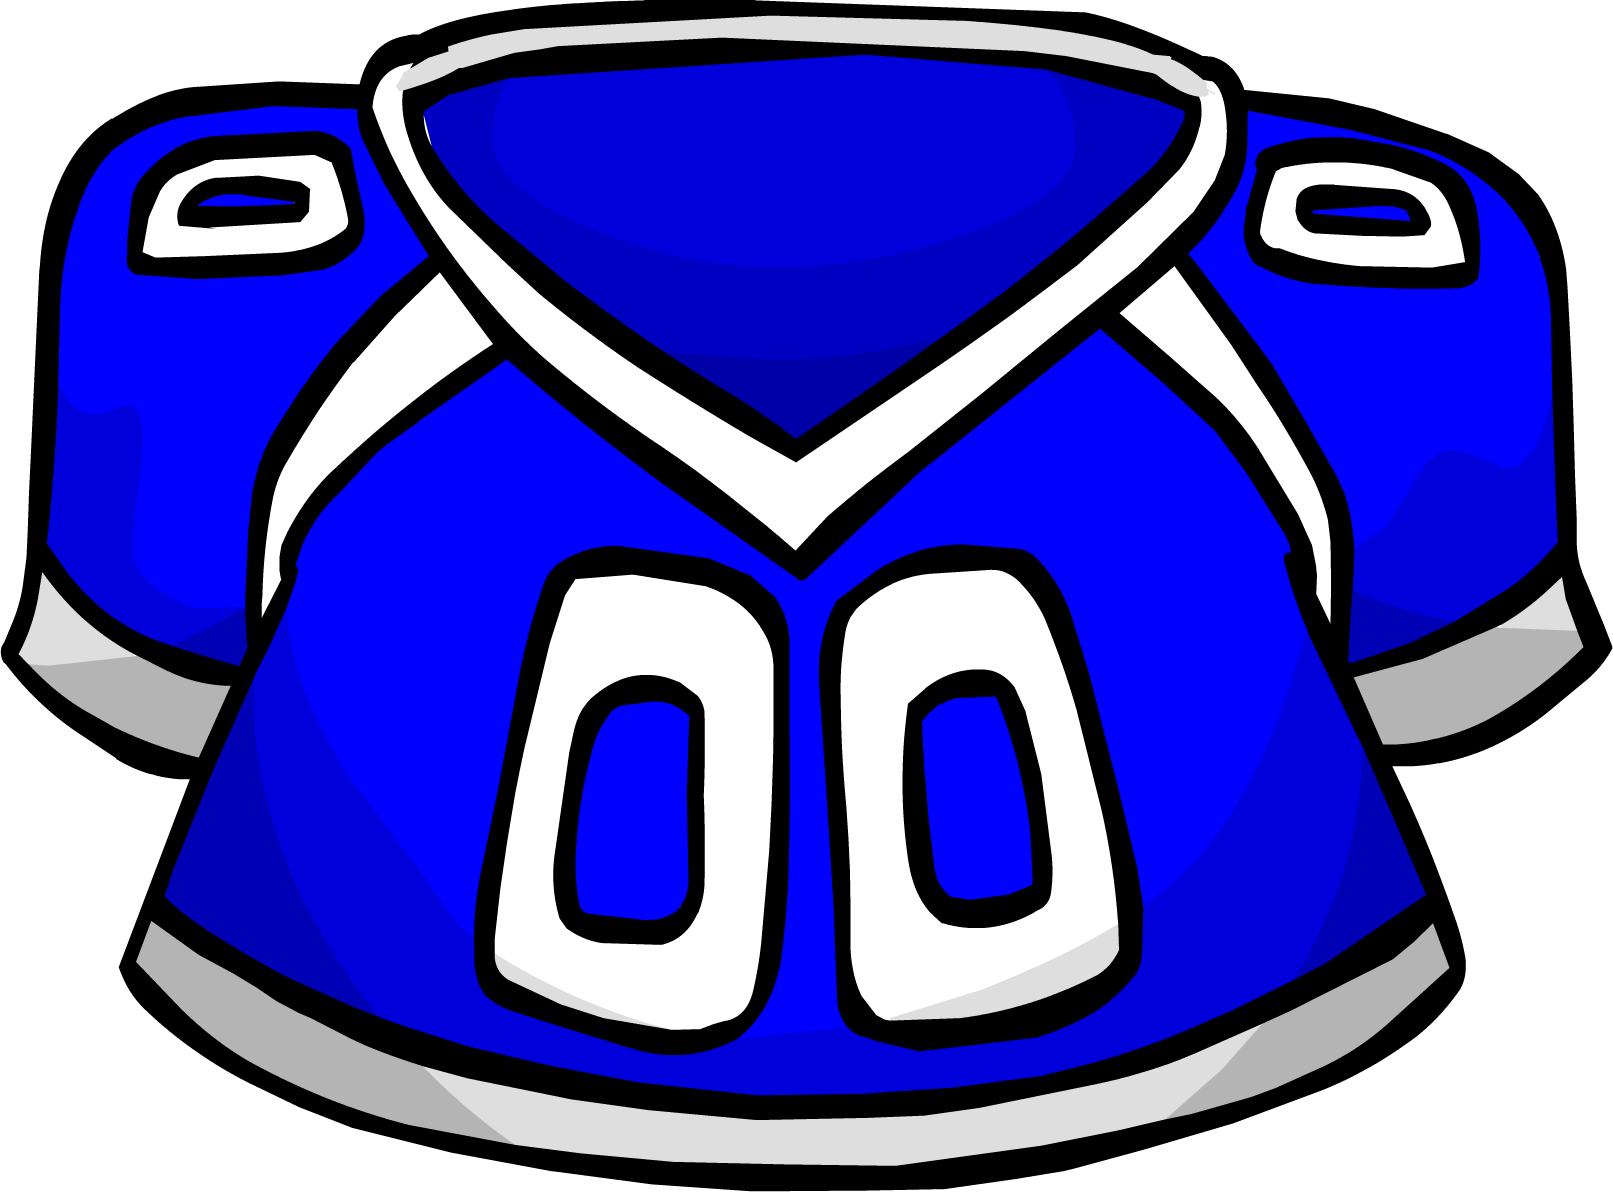 Image blue football jersey. Gear clipart teamwork